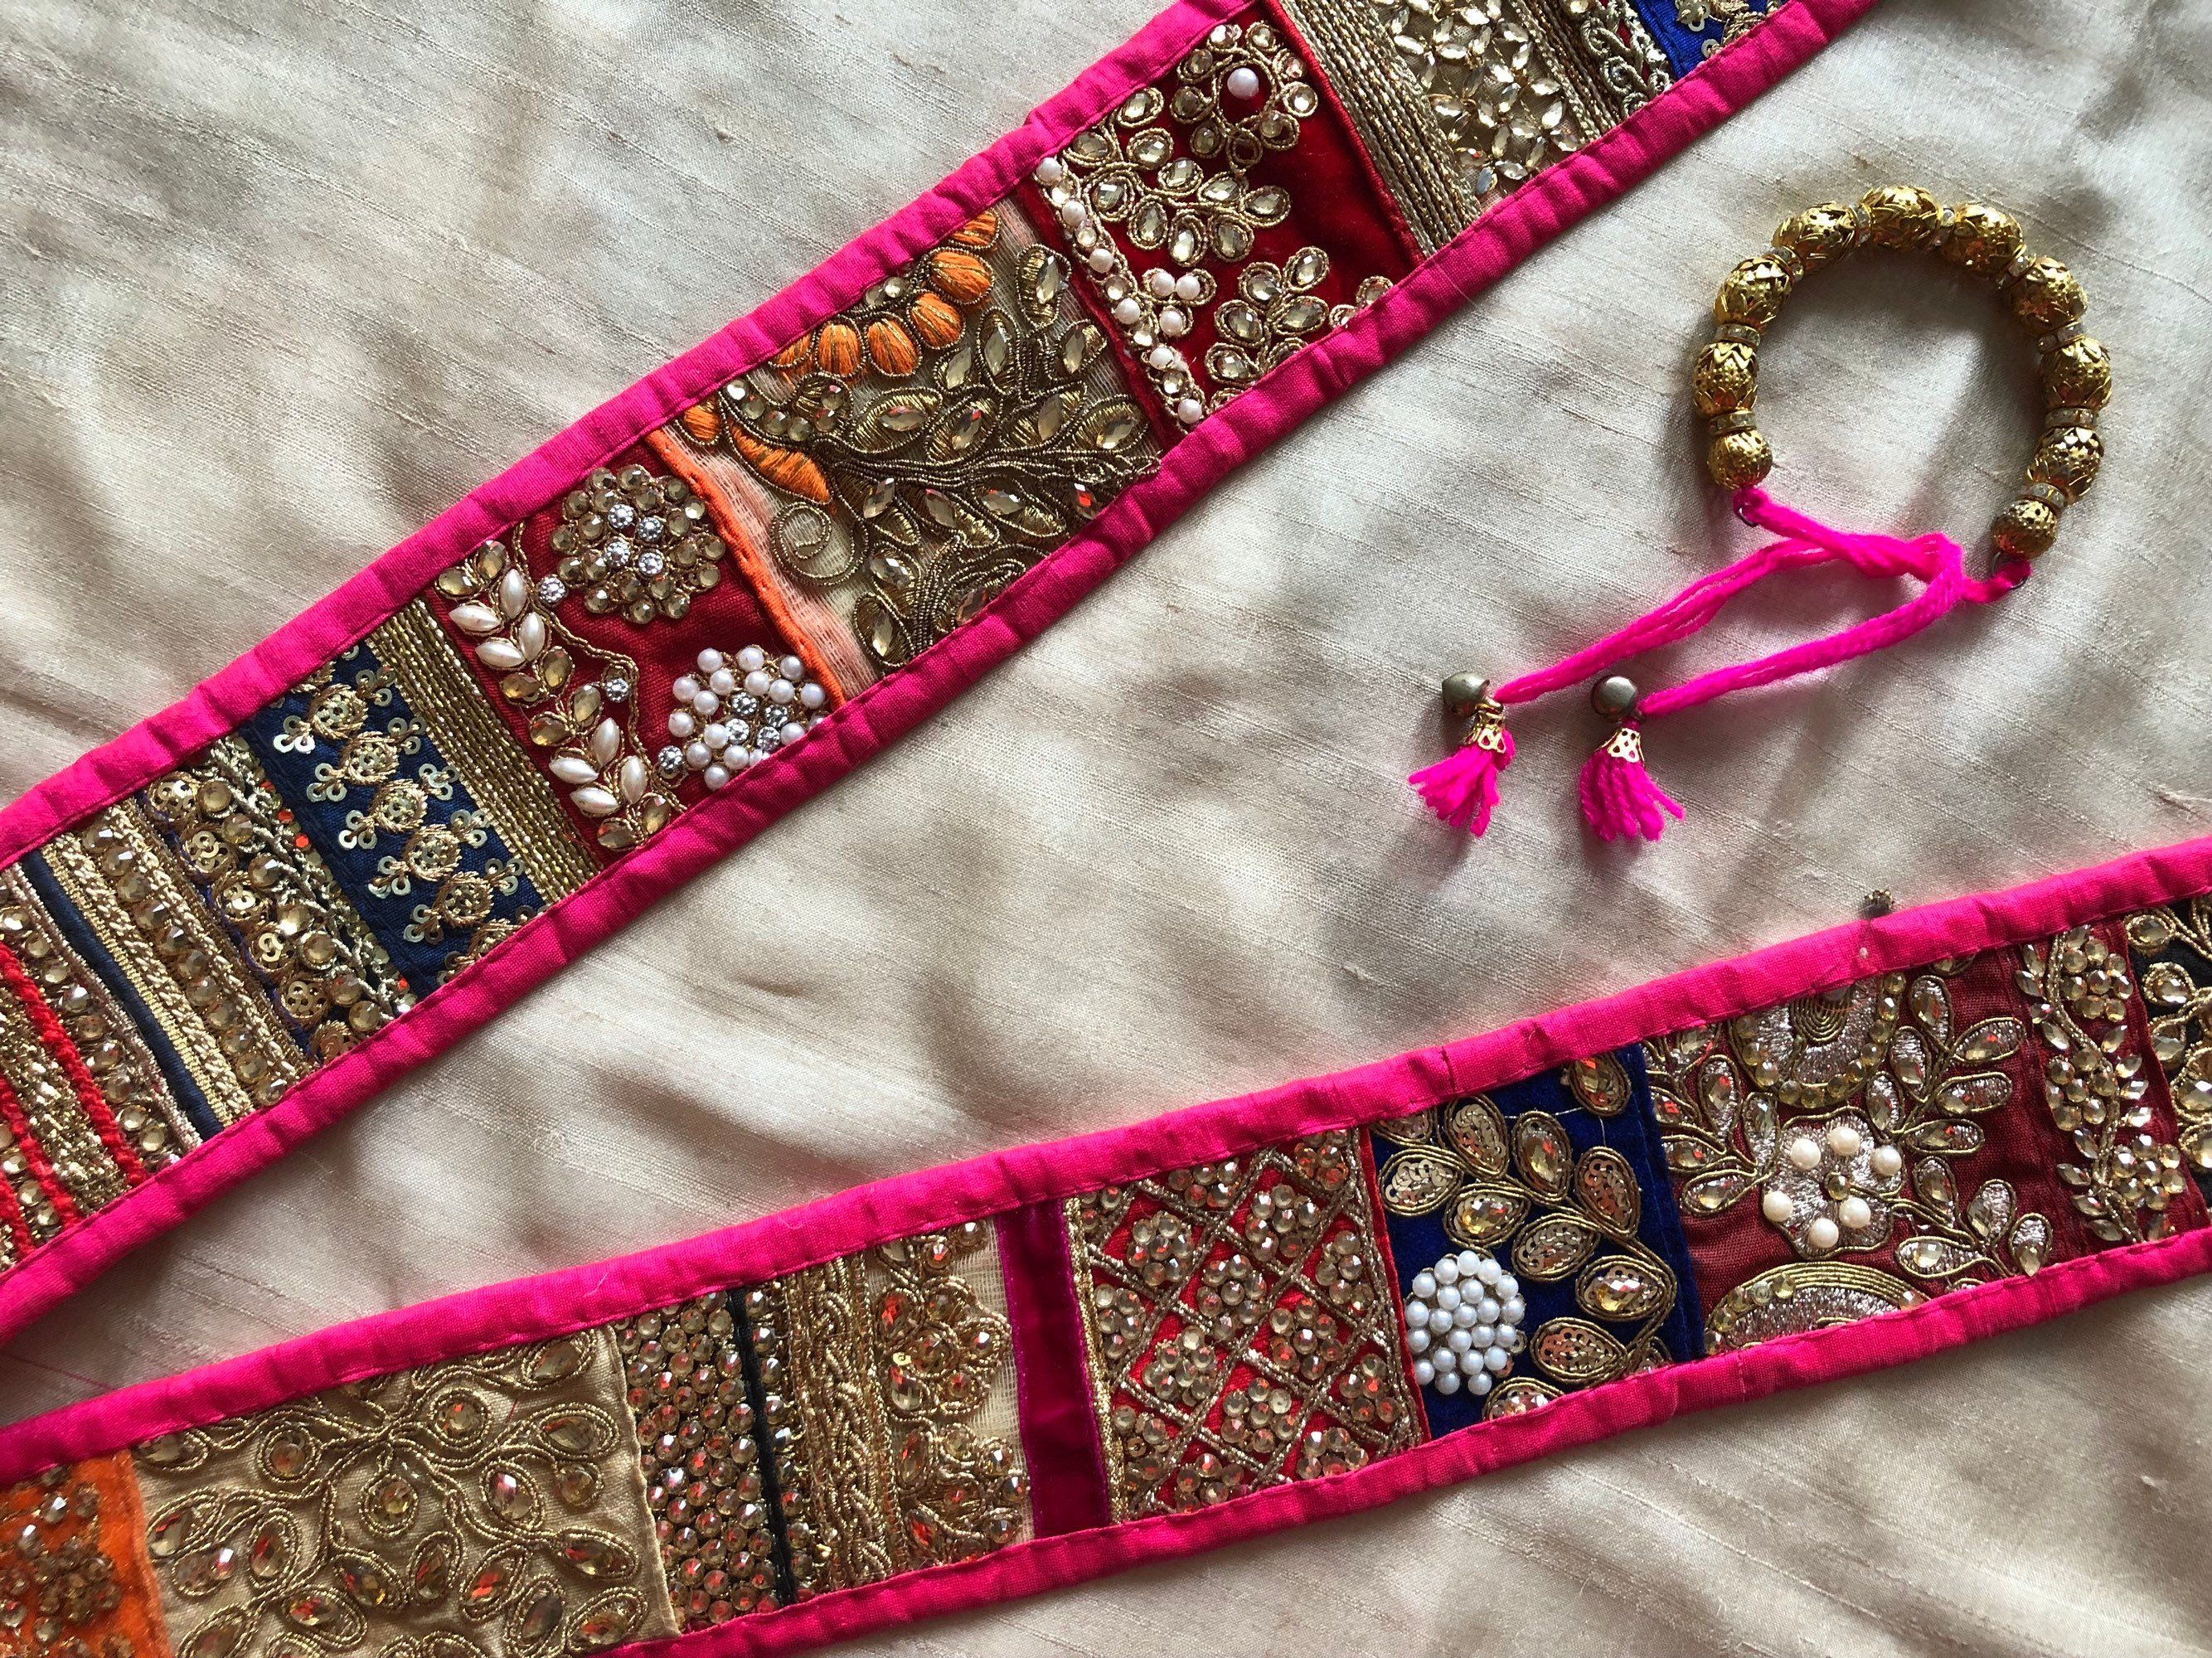 Indian Fringed Trim Designer Pink Ribbon Beaded Handmade Border Sewing Lace 1  Y